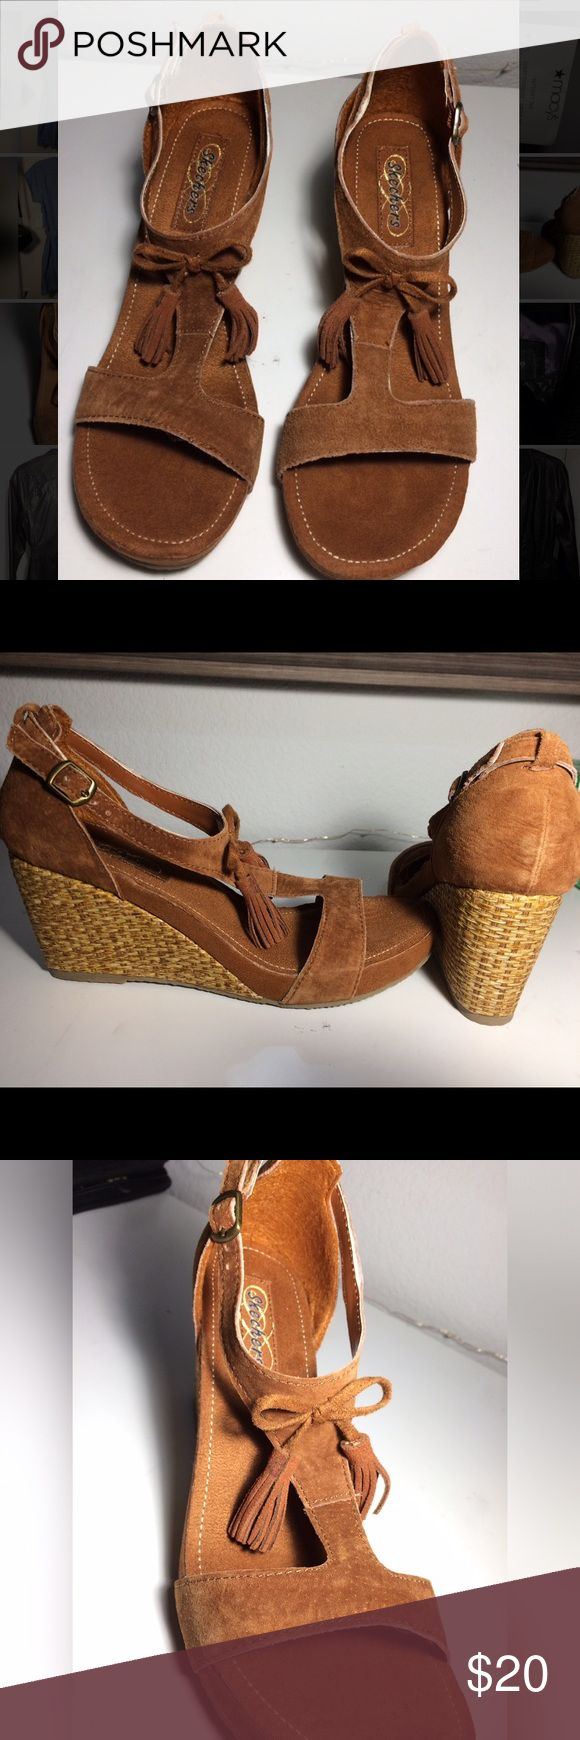 Women's Skechers wedge suede sandals Women's size 8 (US) Modiste Giddy Suede T-Strap. Never worn, like brand new without box. Cute and casual sandal with a 3 in. heel. Skechers Shoes Wedges